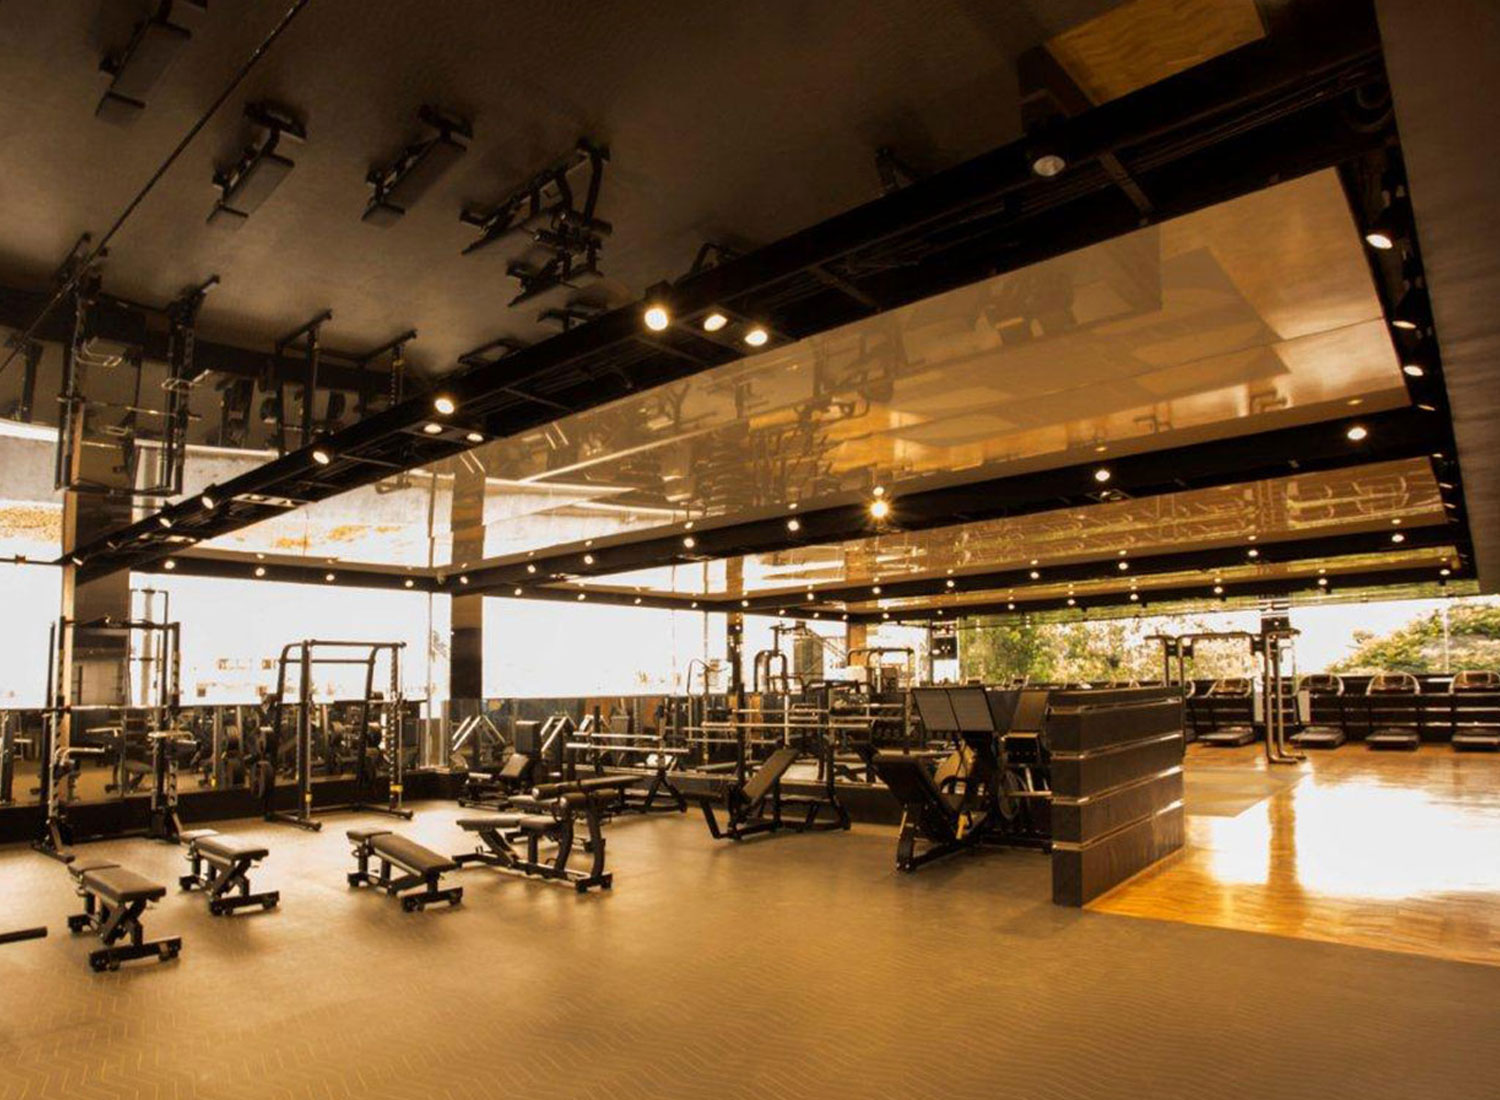 Haute Fitness - Stretch Ceiling Lacquer in Gym - Gym - Bangalore